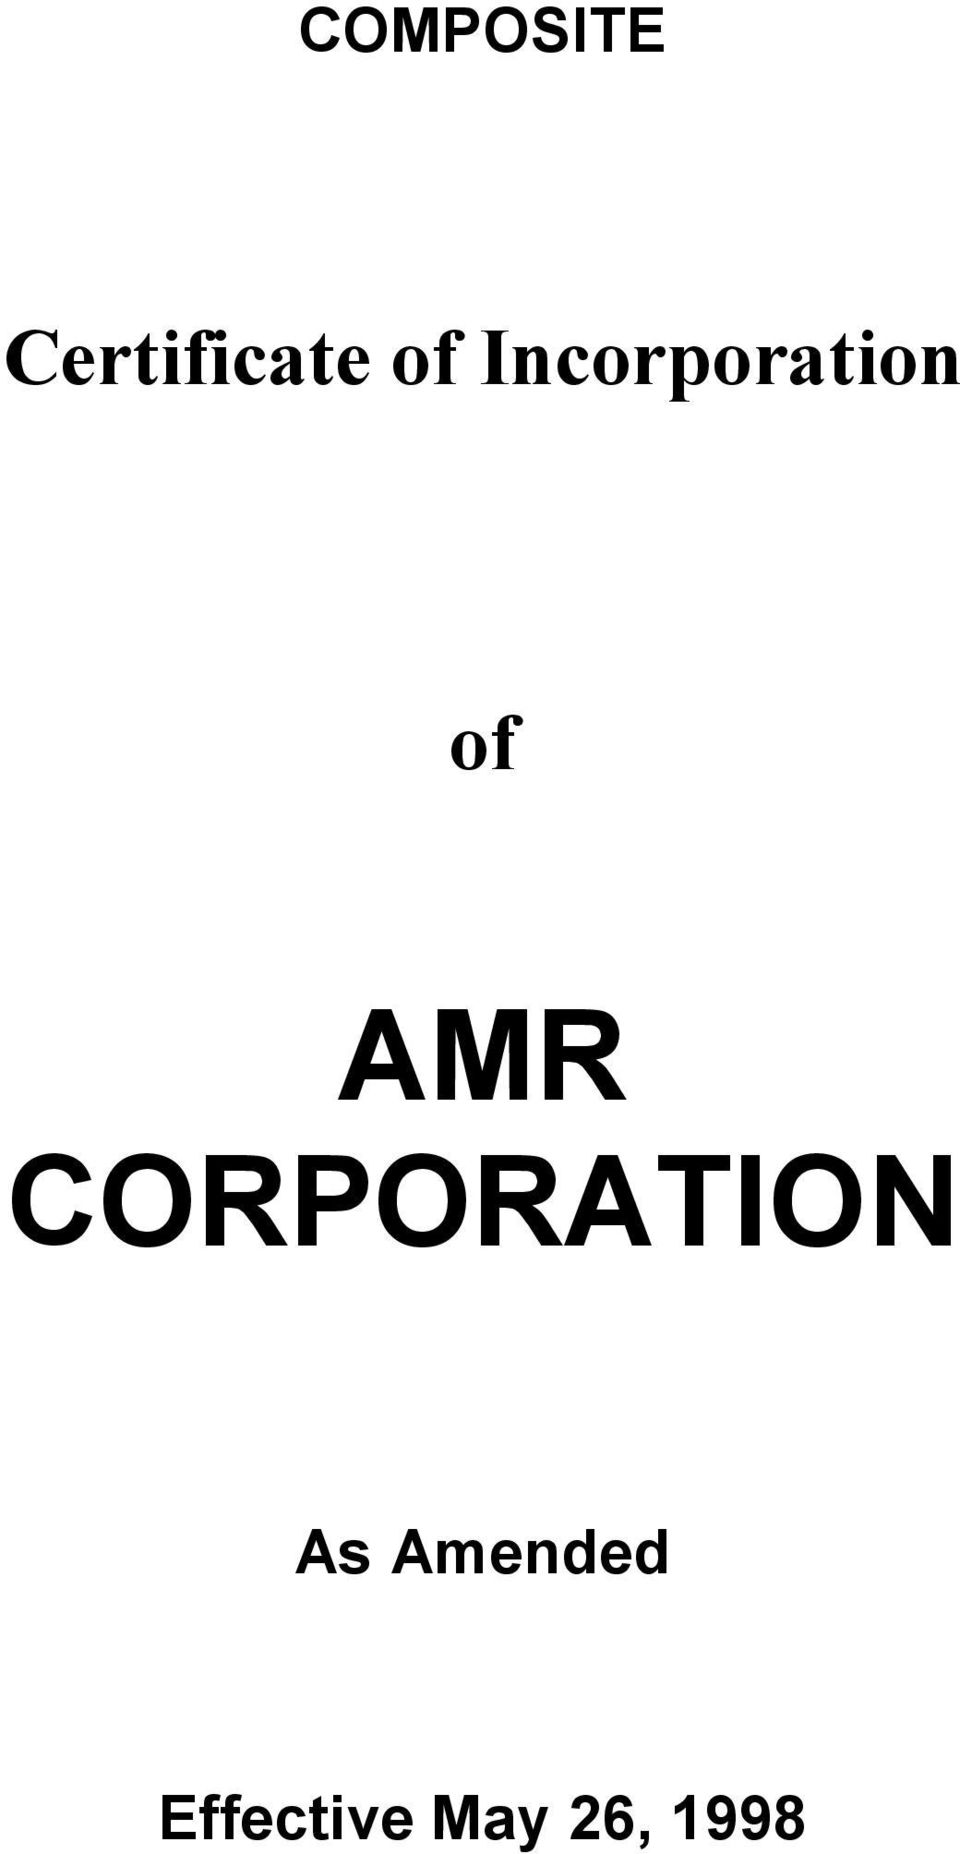 AMR CORPORATION As